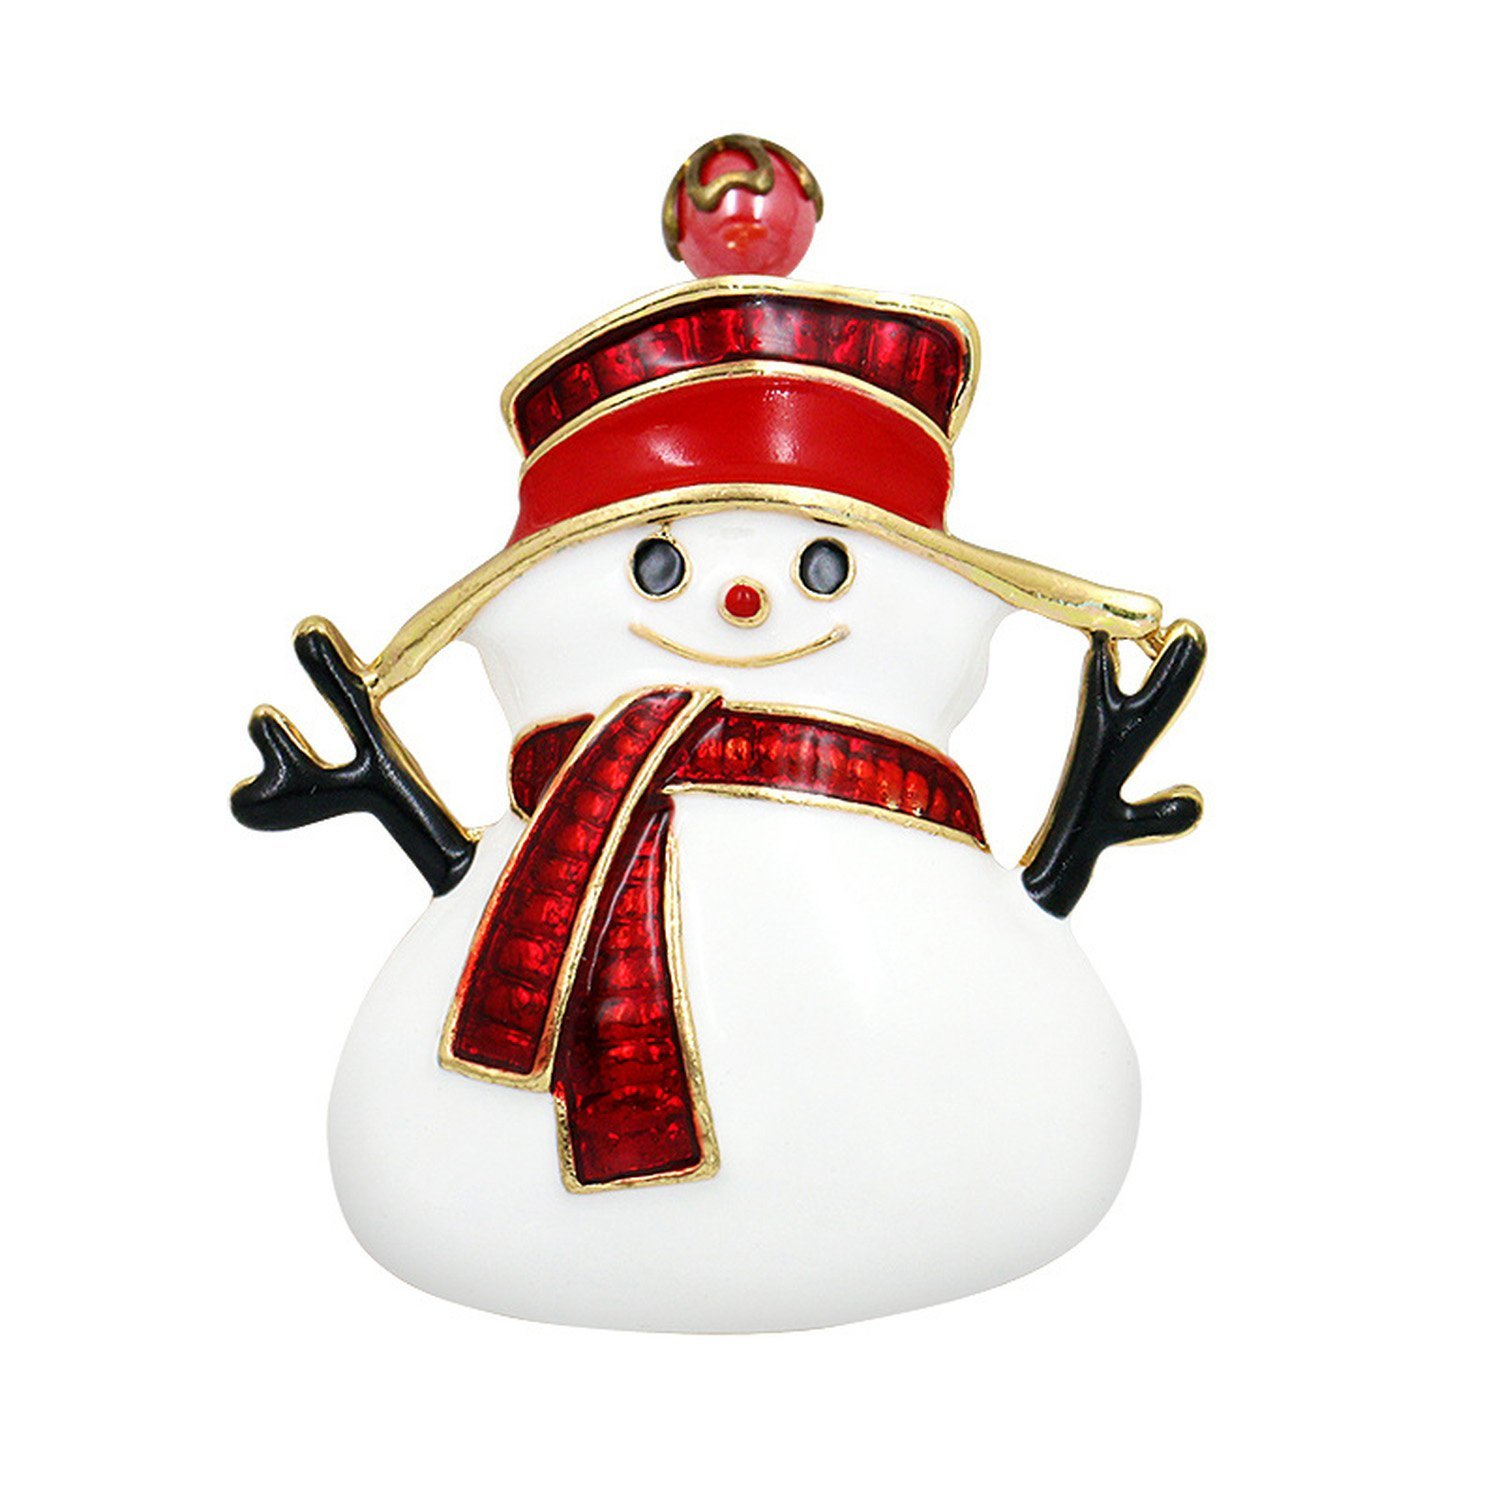 Baolustre Red Enameled Snowman Brooch Pins For Christmas In Gold Color Plated